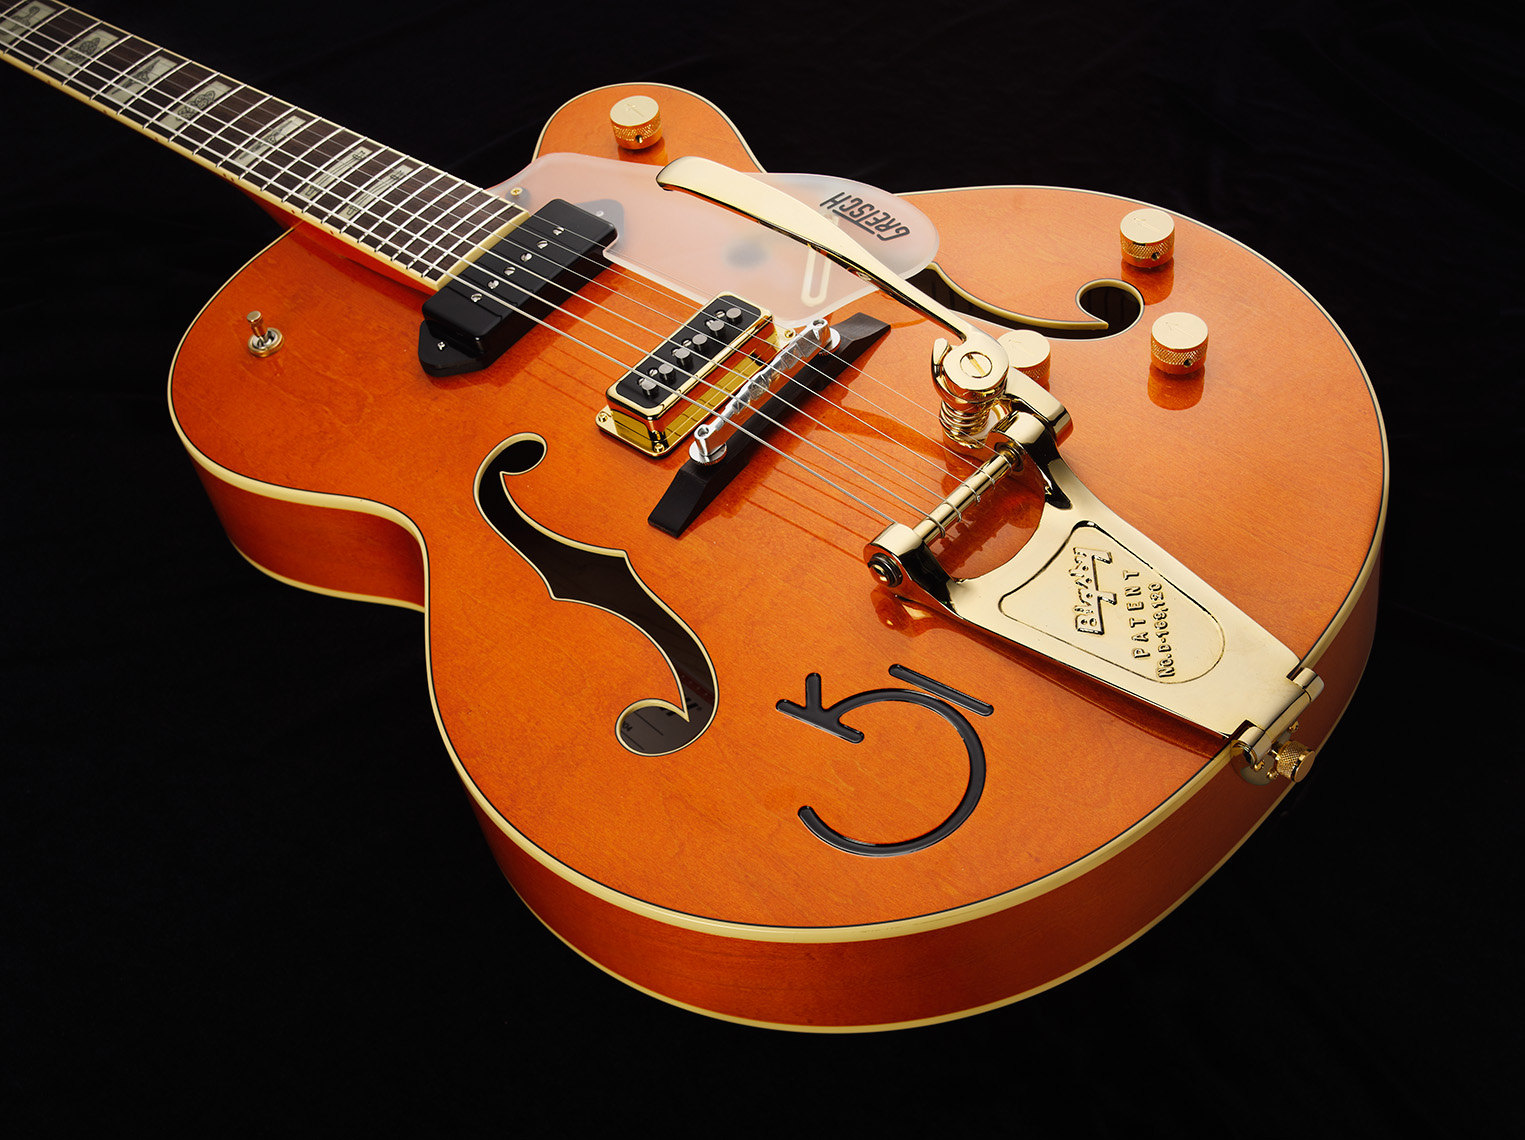 EC_Gretsch_Lower body